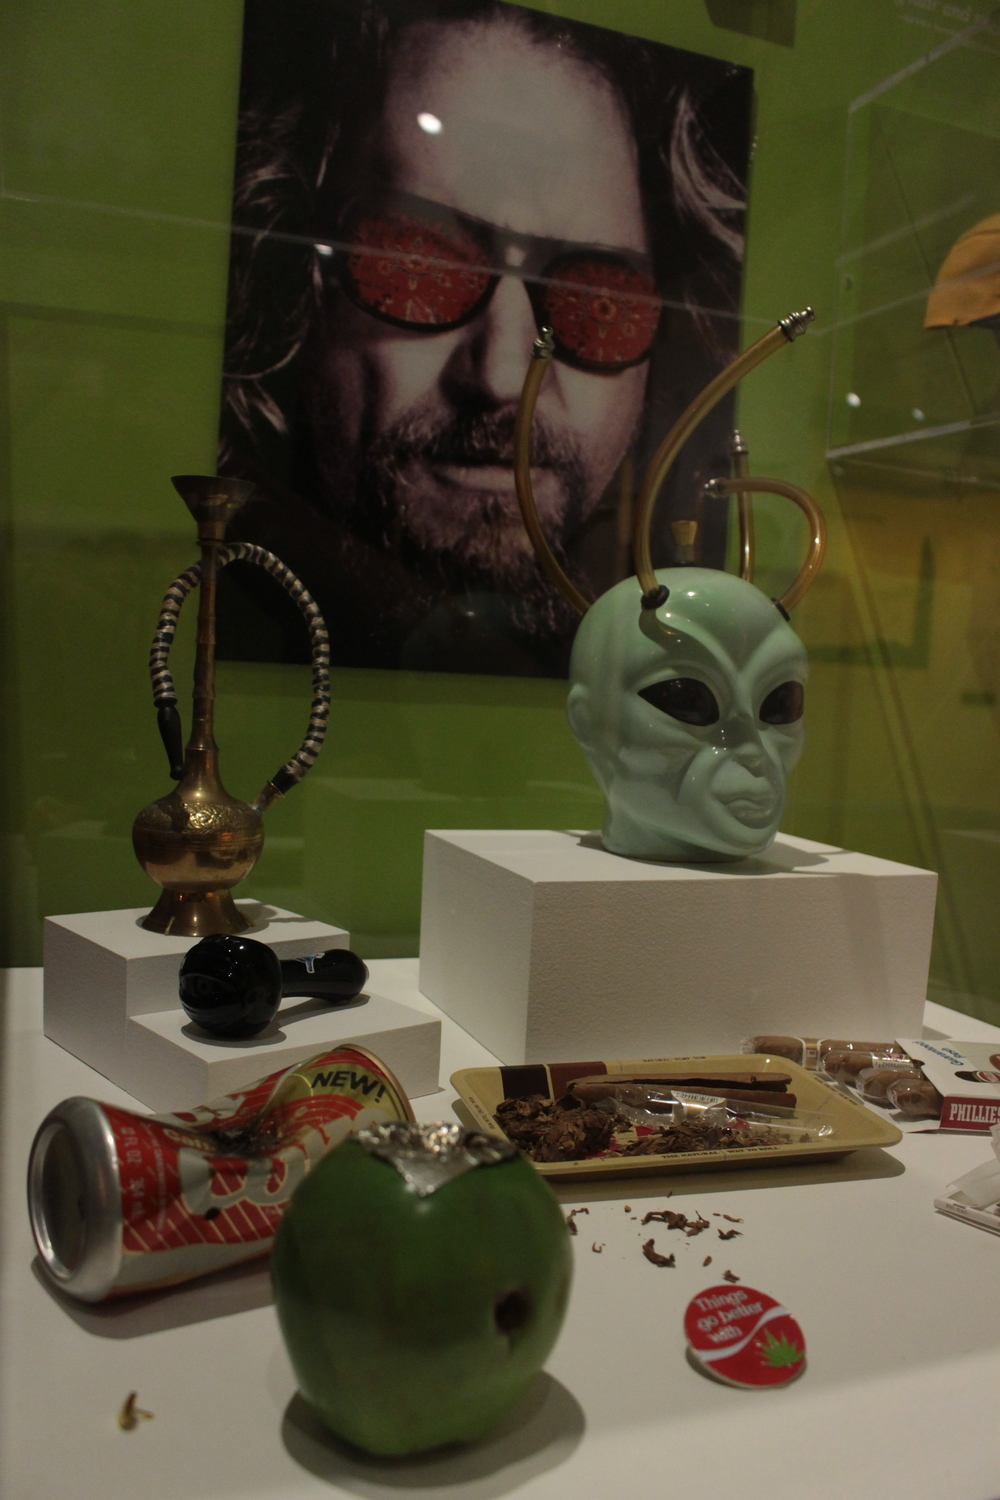 Cannabis paraphenalia and the dude at altered states in oakland